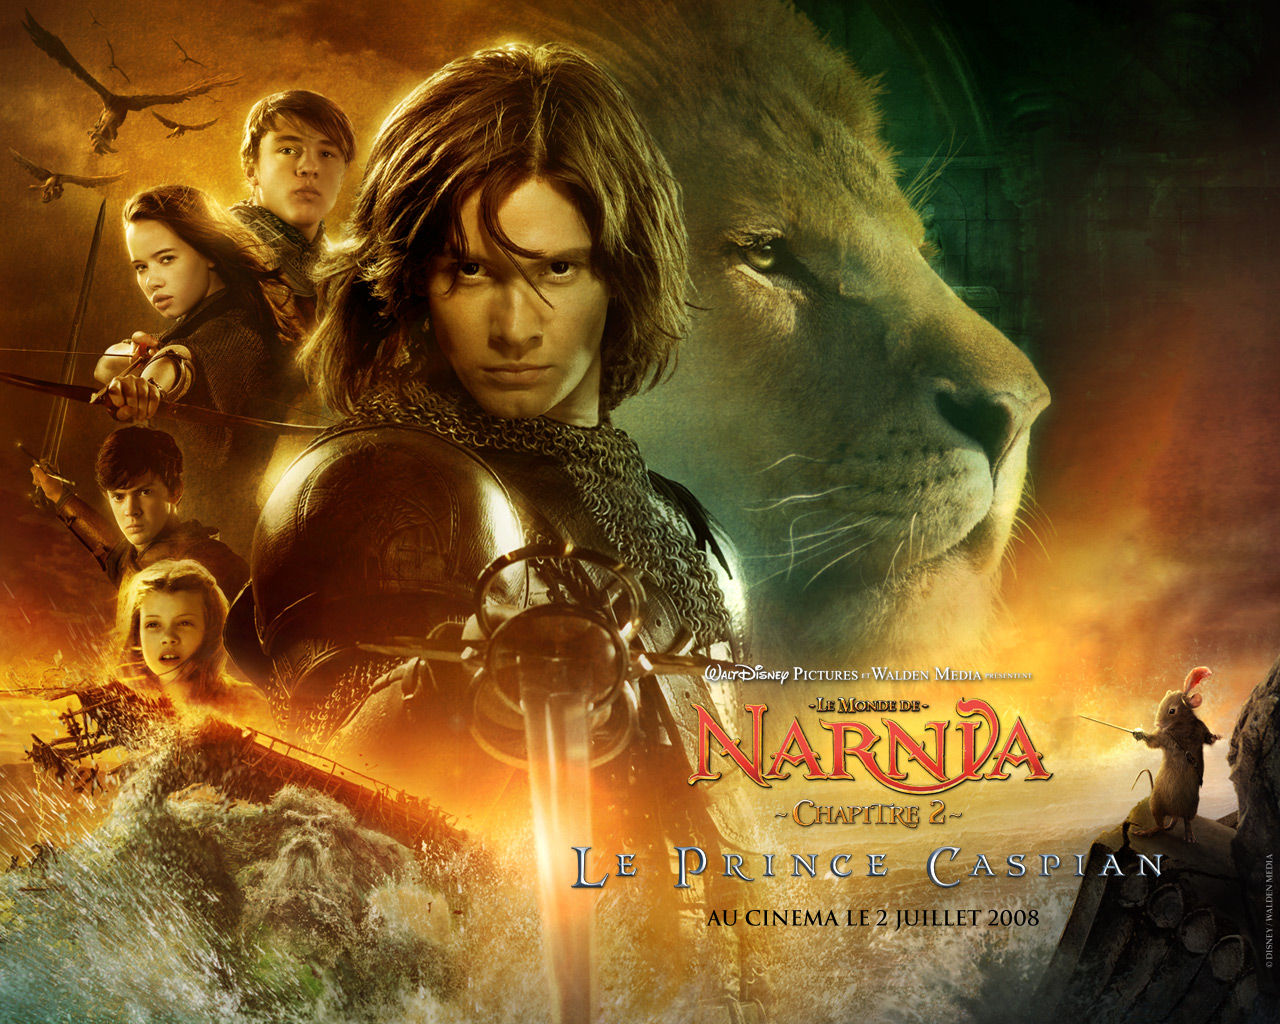 the chronicles of narnia Enjoy the chronicles of narnia in its entirety with this paperback box set, containing the mass market editions of c s lewis's classic fantasy series.